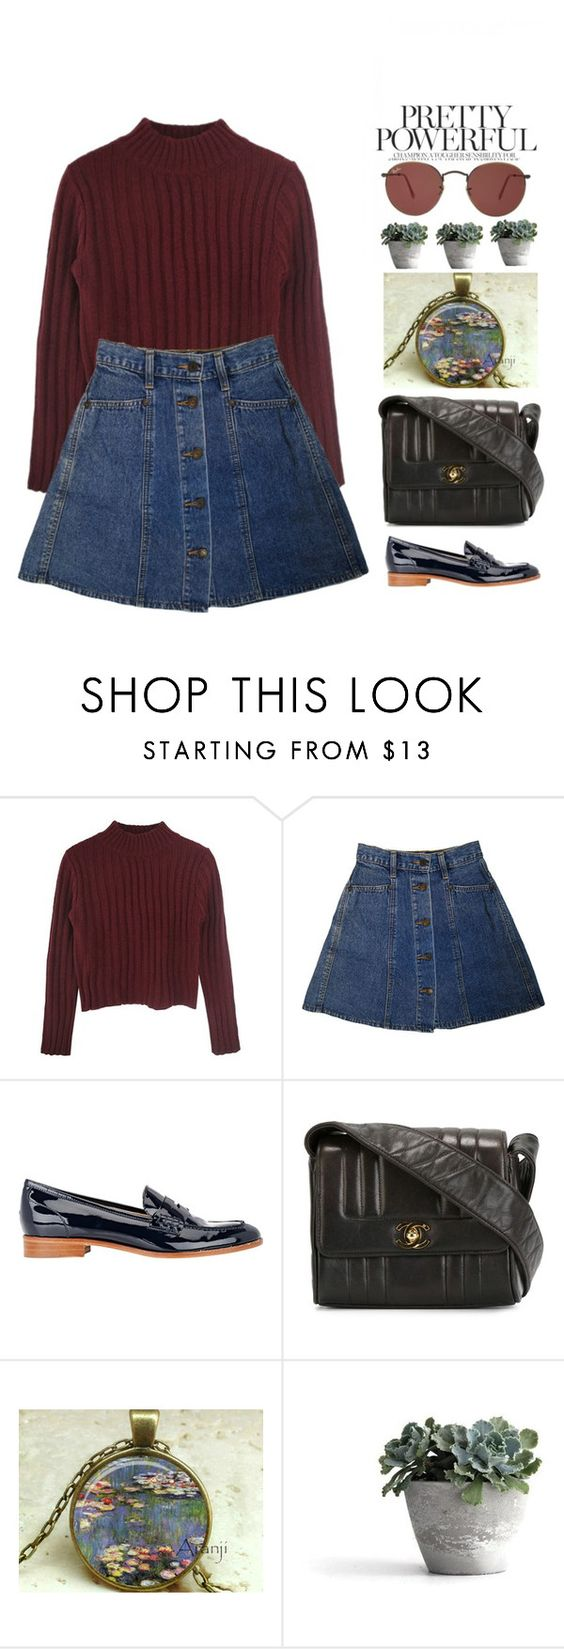 """""""Untitled #254"""" by mathildejohannessen ❤ liked on Polyvore featuring Barneys New York, Chanel and Ray-Ban"""